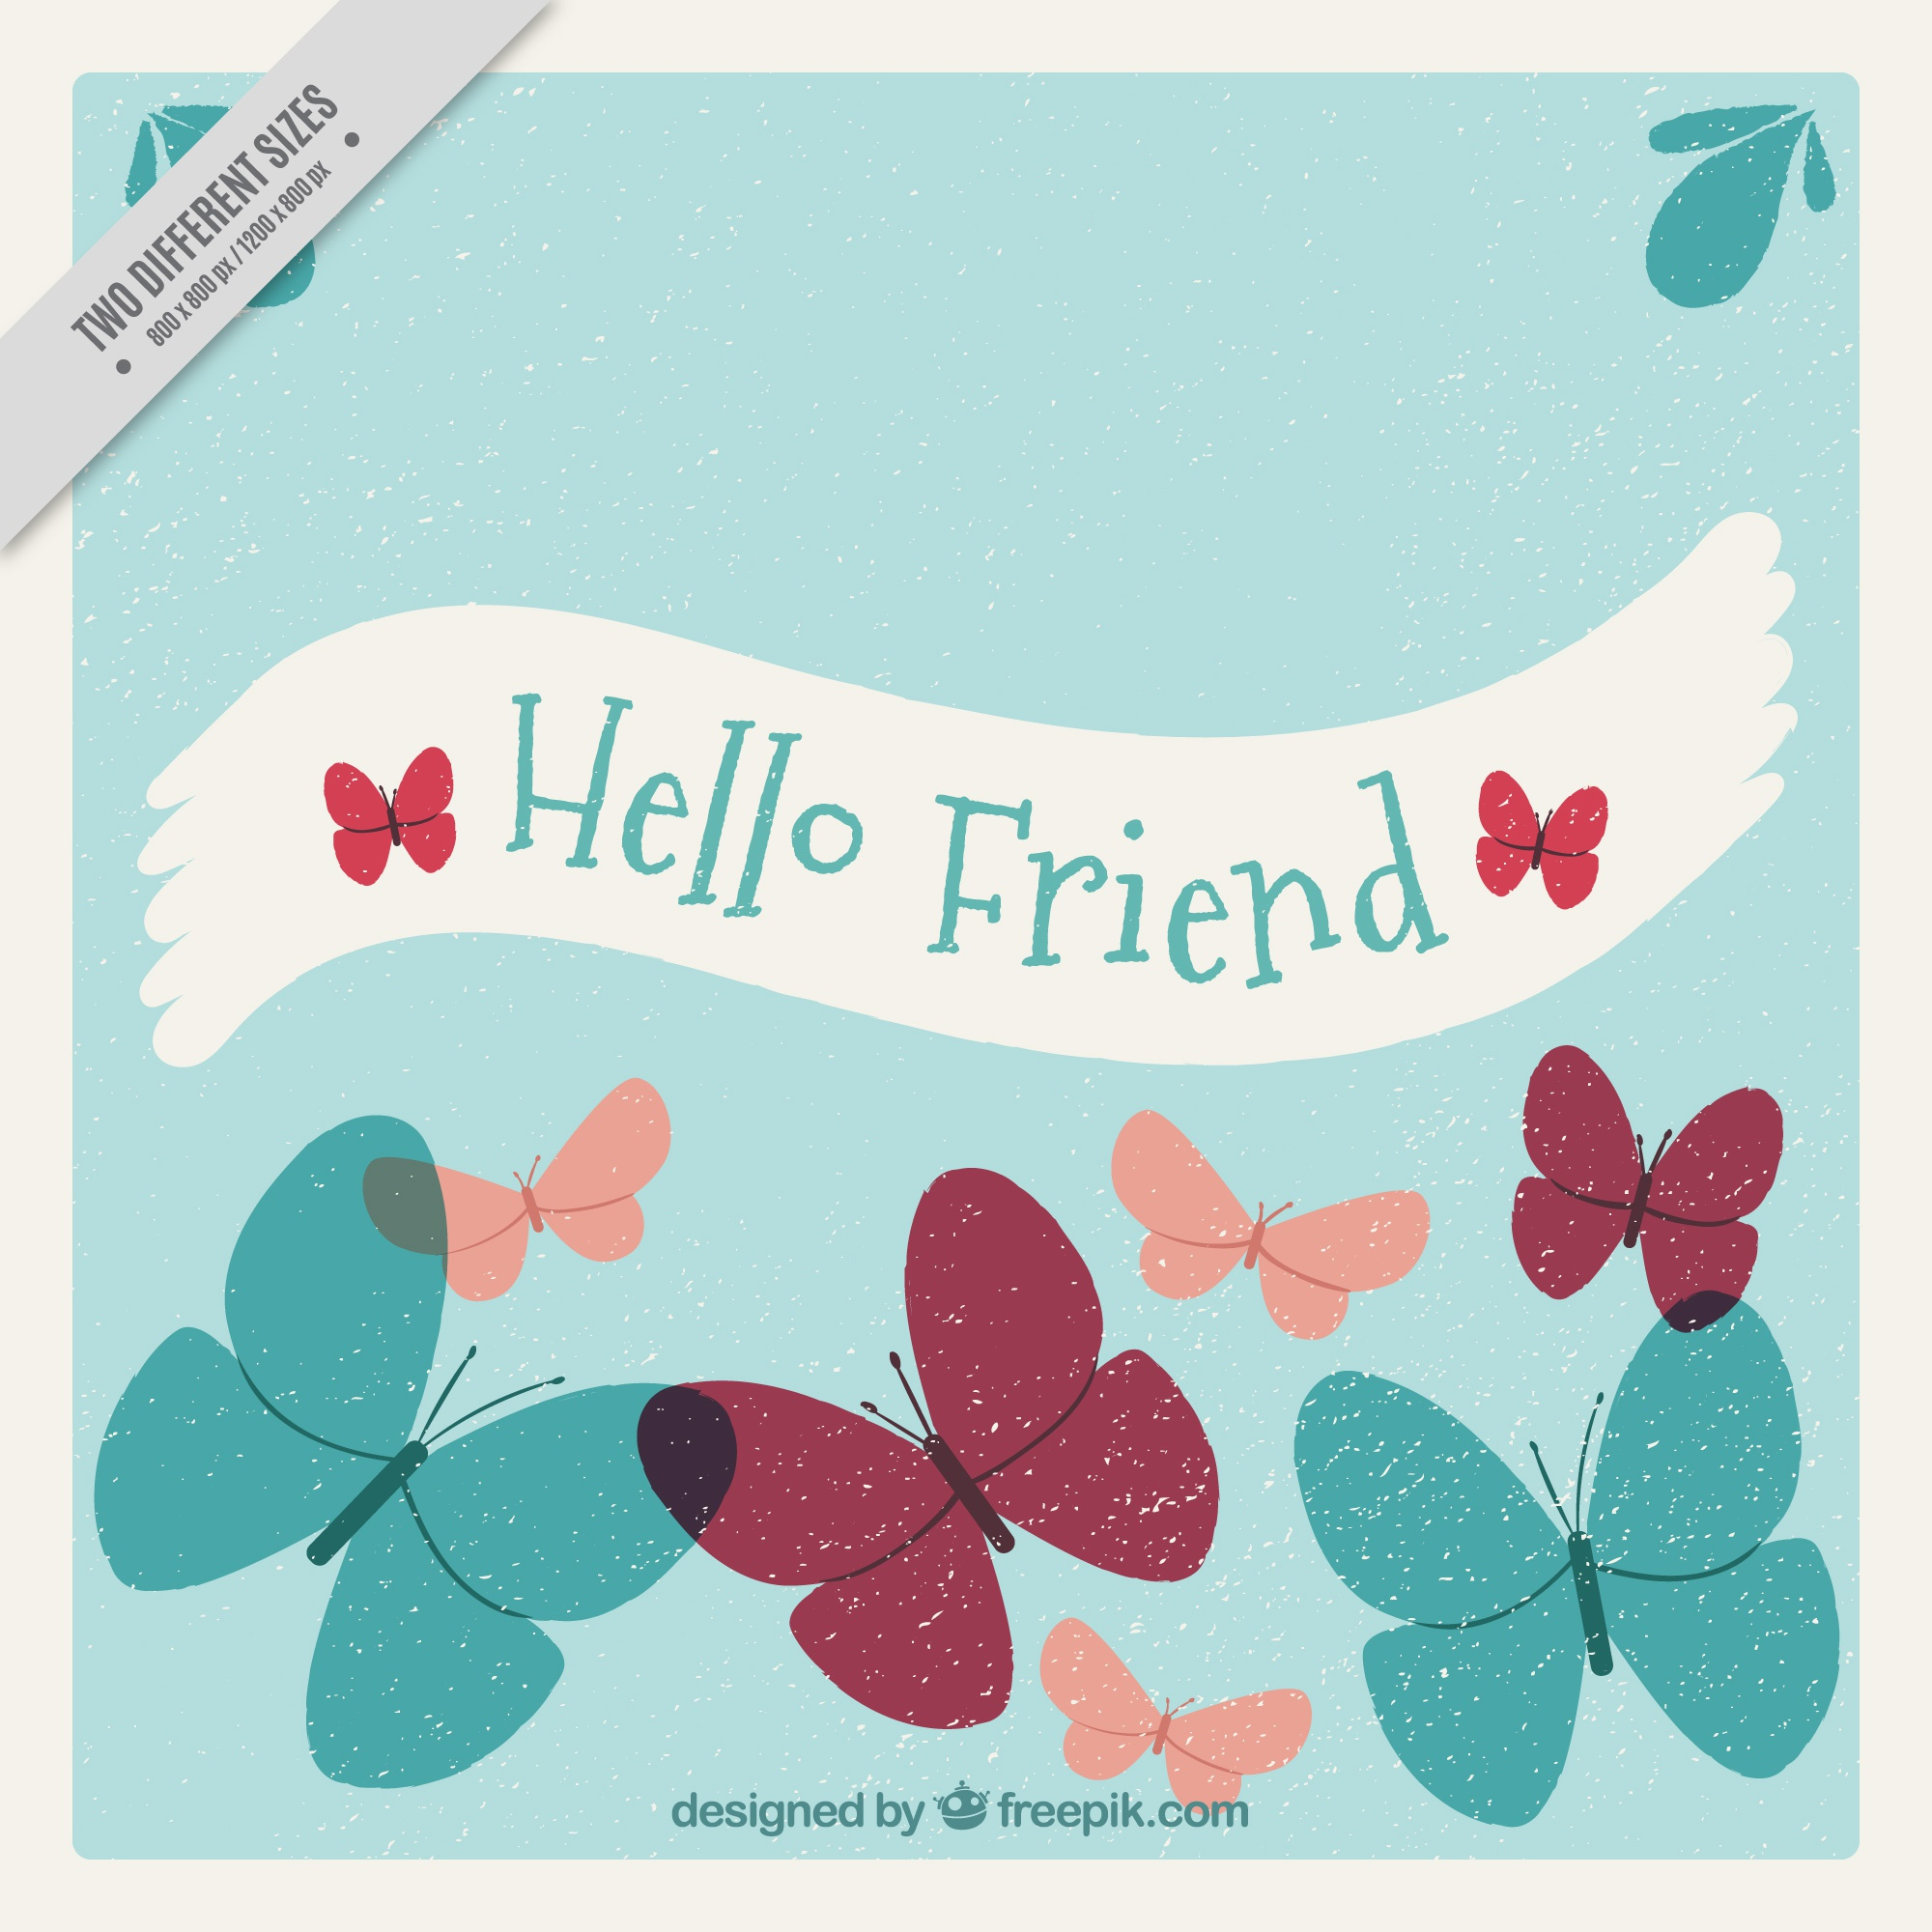 Vintage background with decorative butterflies